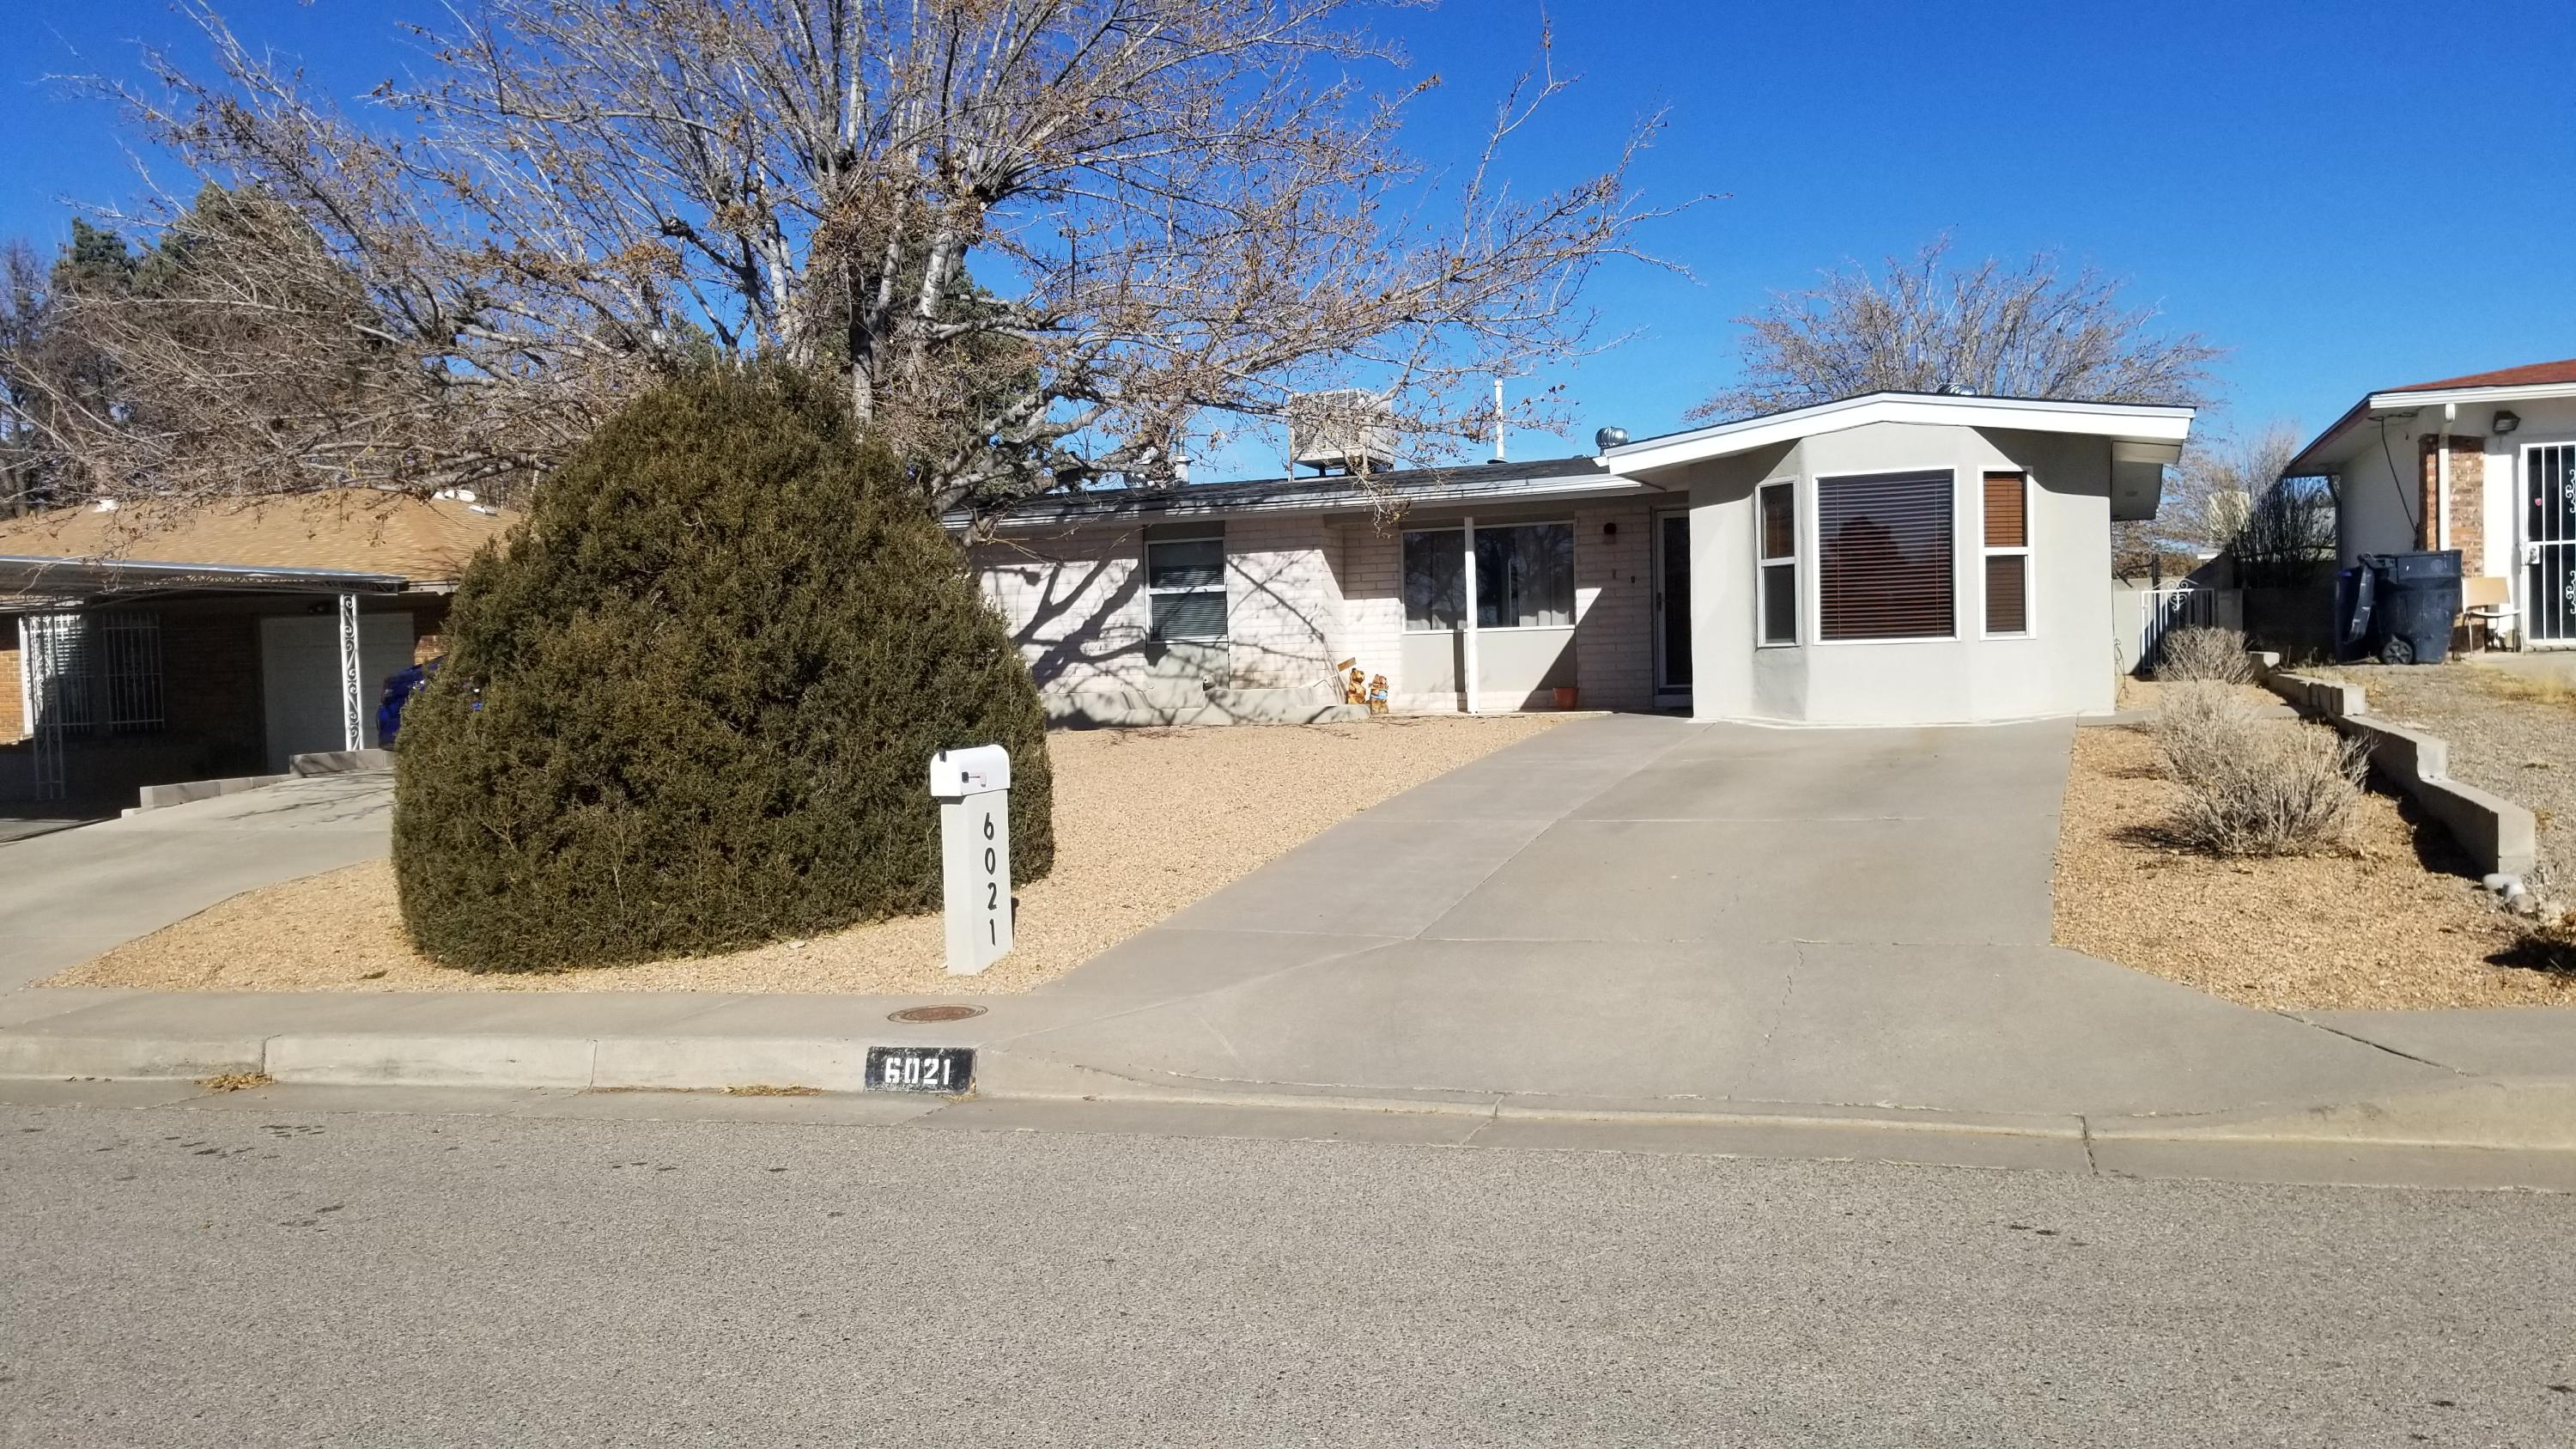 Well cared for home!  Home had been fully remodeled when it was purchased in 2014 and the owners have taken great care.  Home has 2 livind areas.  Great kitchen!  Nice updates in both bathrooms a wood burning stove and a great back yard with covered patio and 2 sheds!